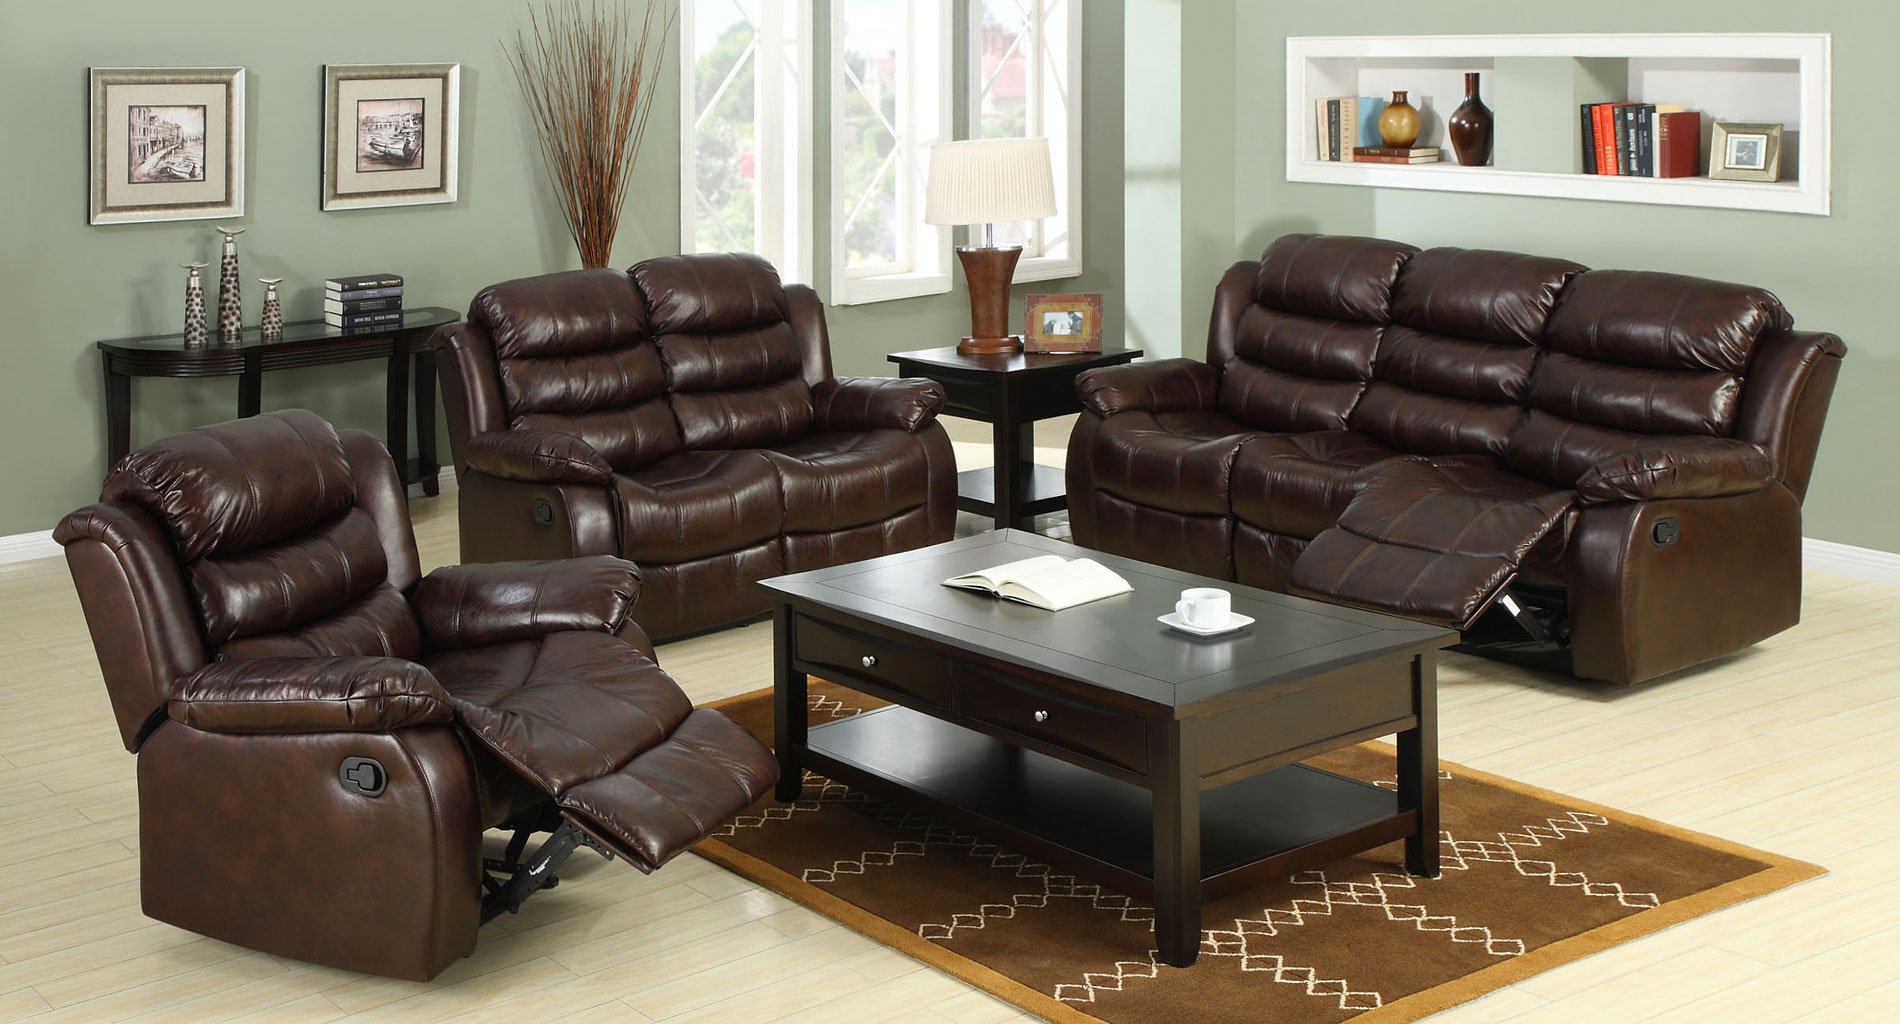 Berkshire reclining living room set living room sets for M s living room furniture